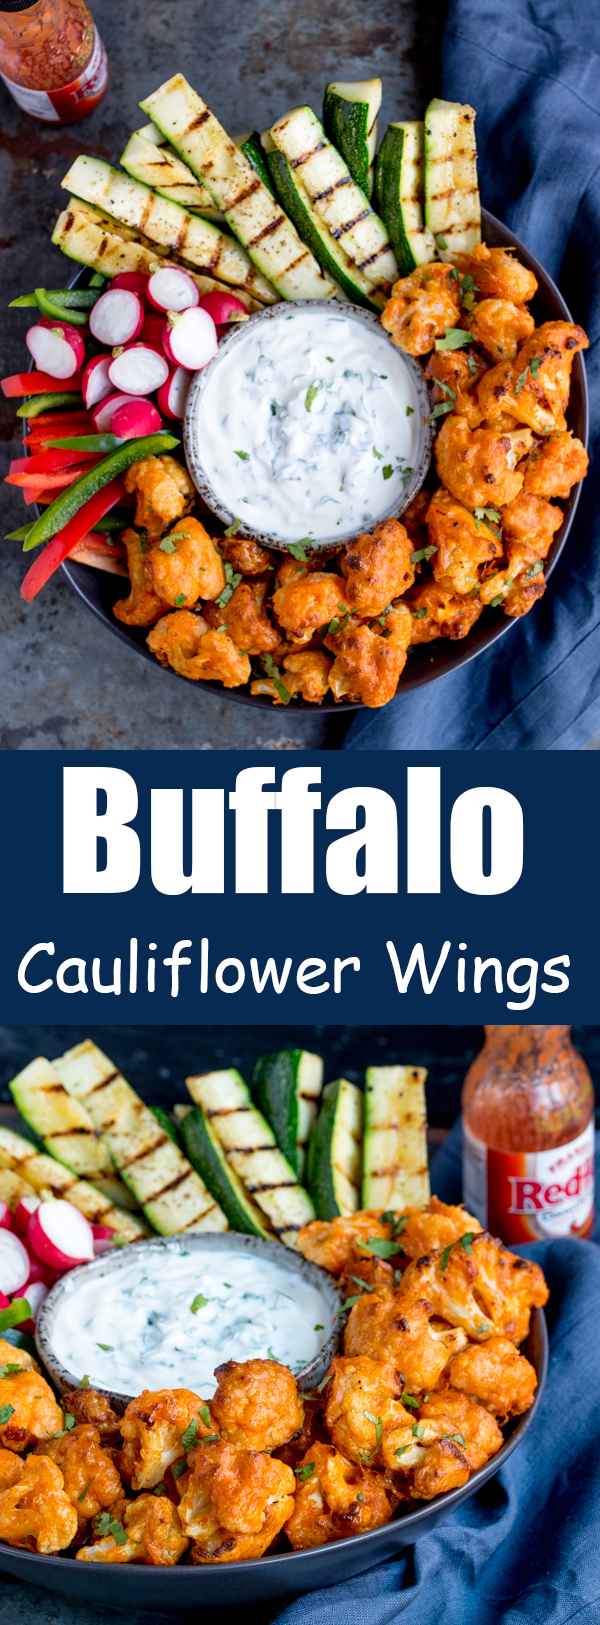 baked buffalo cauliflower wings pin